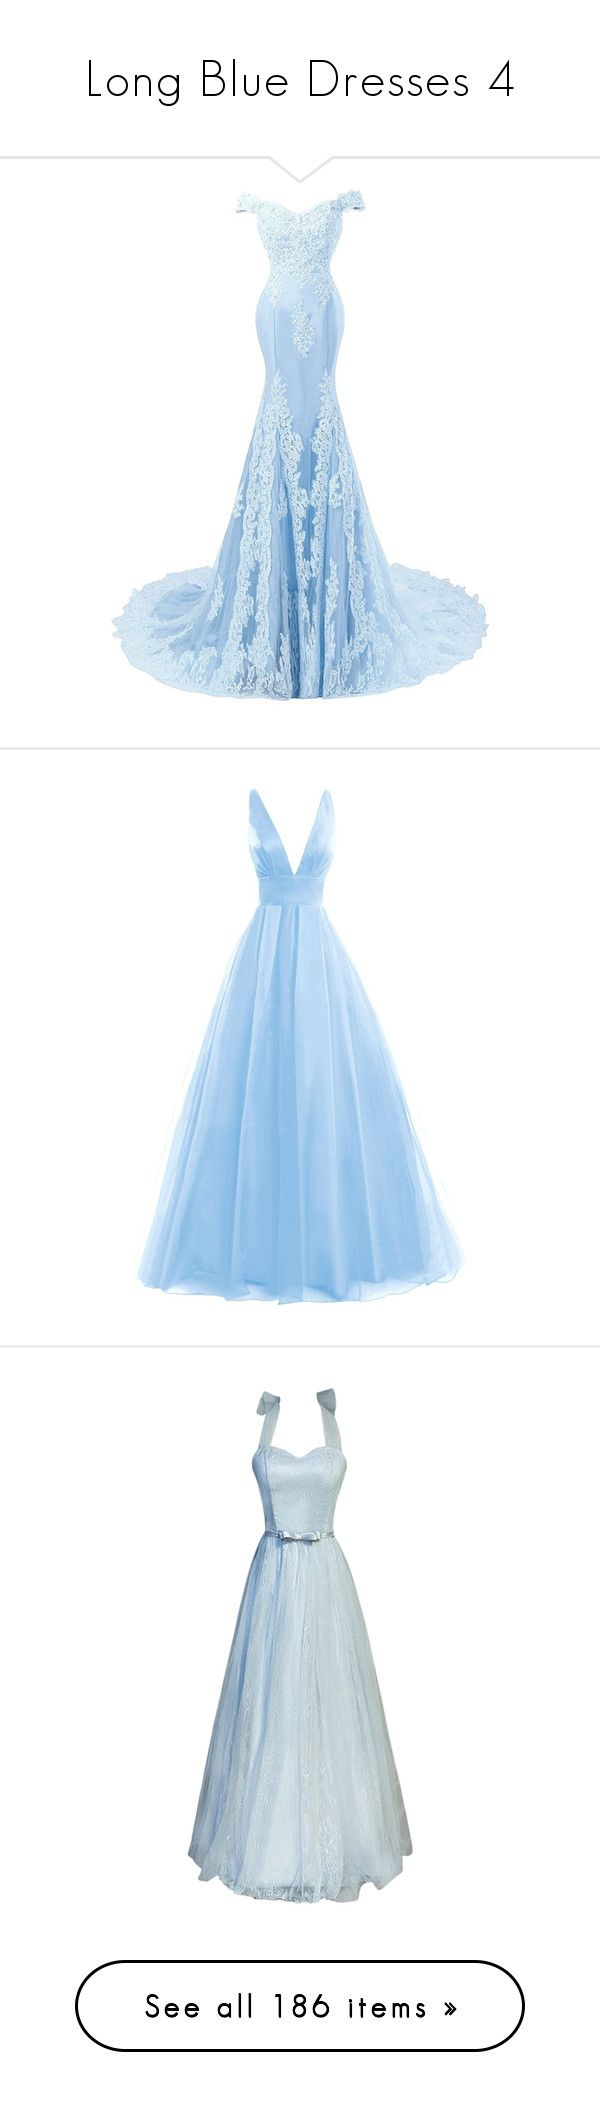 """""""Long Blue Dresses 4"""" by emma-frost-98 ❤ liked on Polyvore featuring dresses, gowns, blue, long dress, lace prom dresses, white beaded gown, long homecoming dresses, blue lace dresses, long prom dresses and gown"""